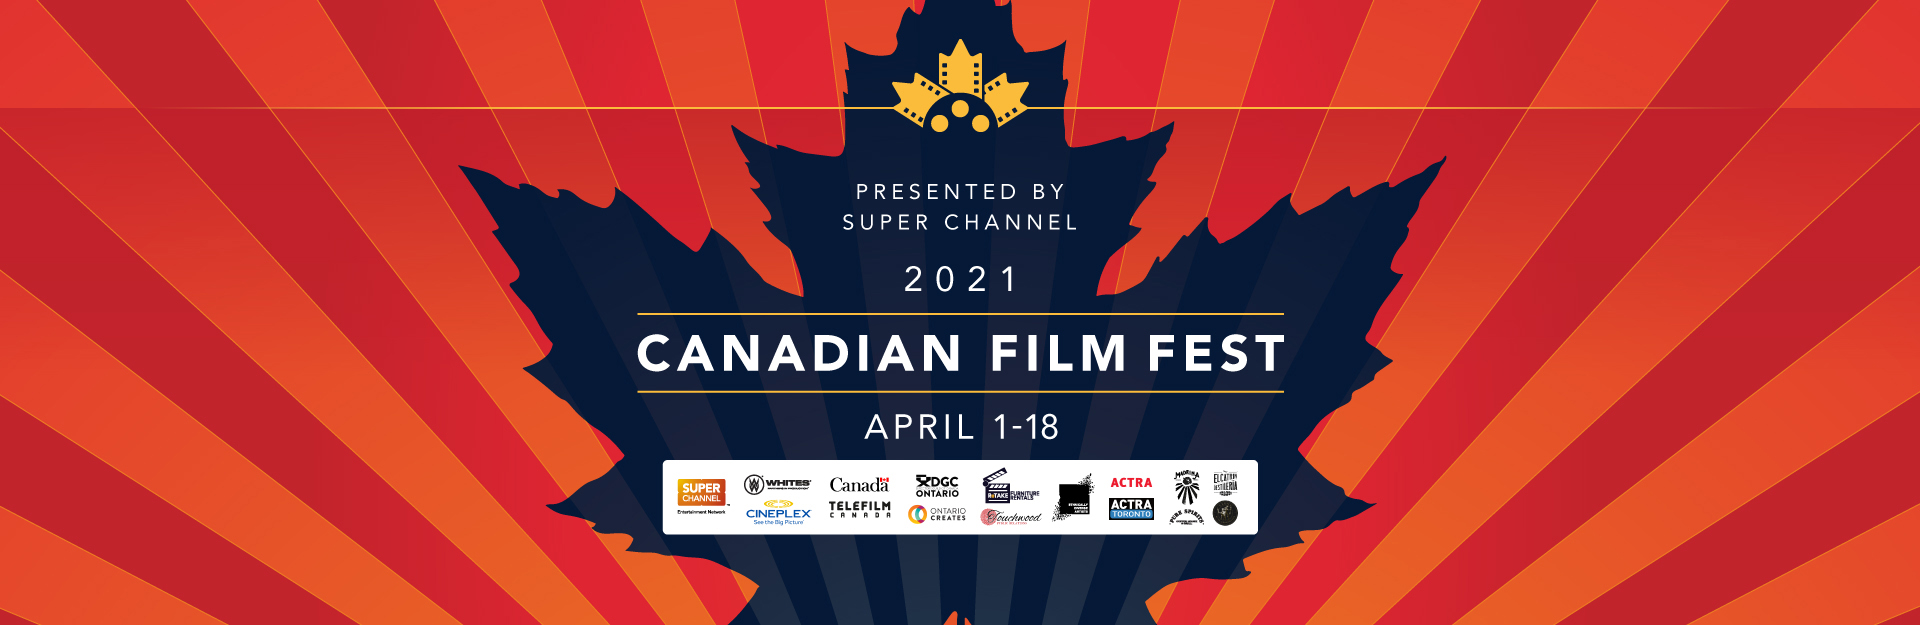 Super Channel Presents the 2021 Canadian Film Festival